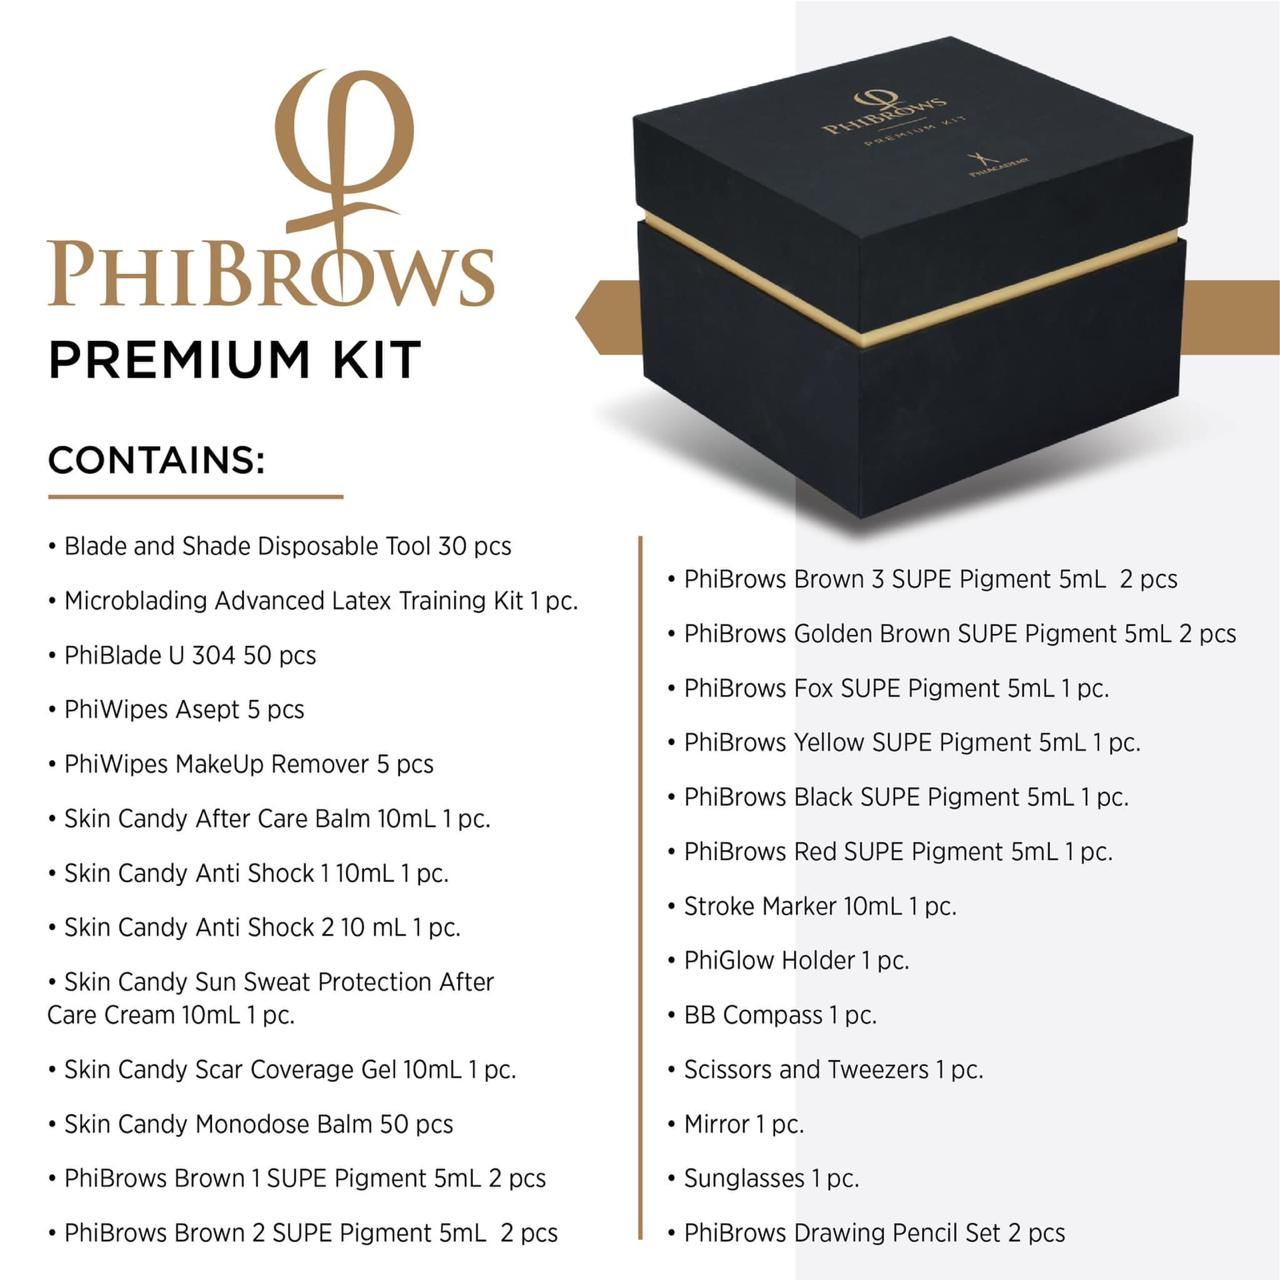 Phibrows Premium Kit